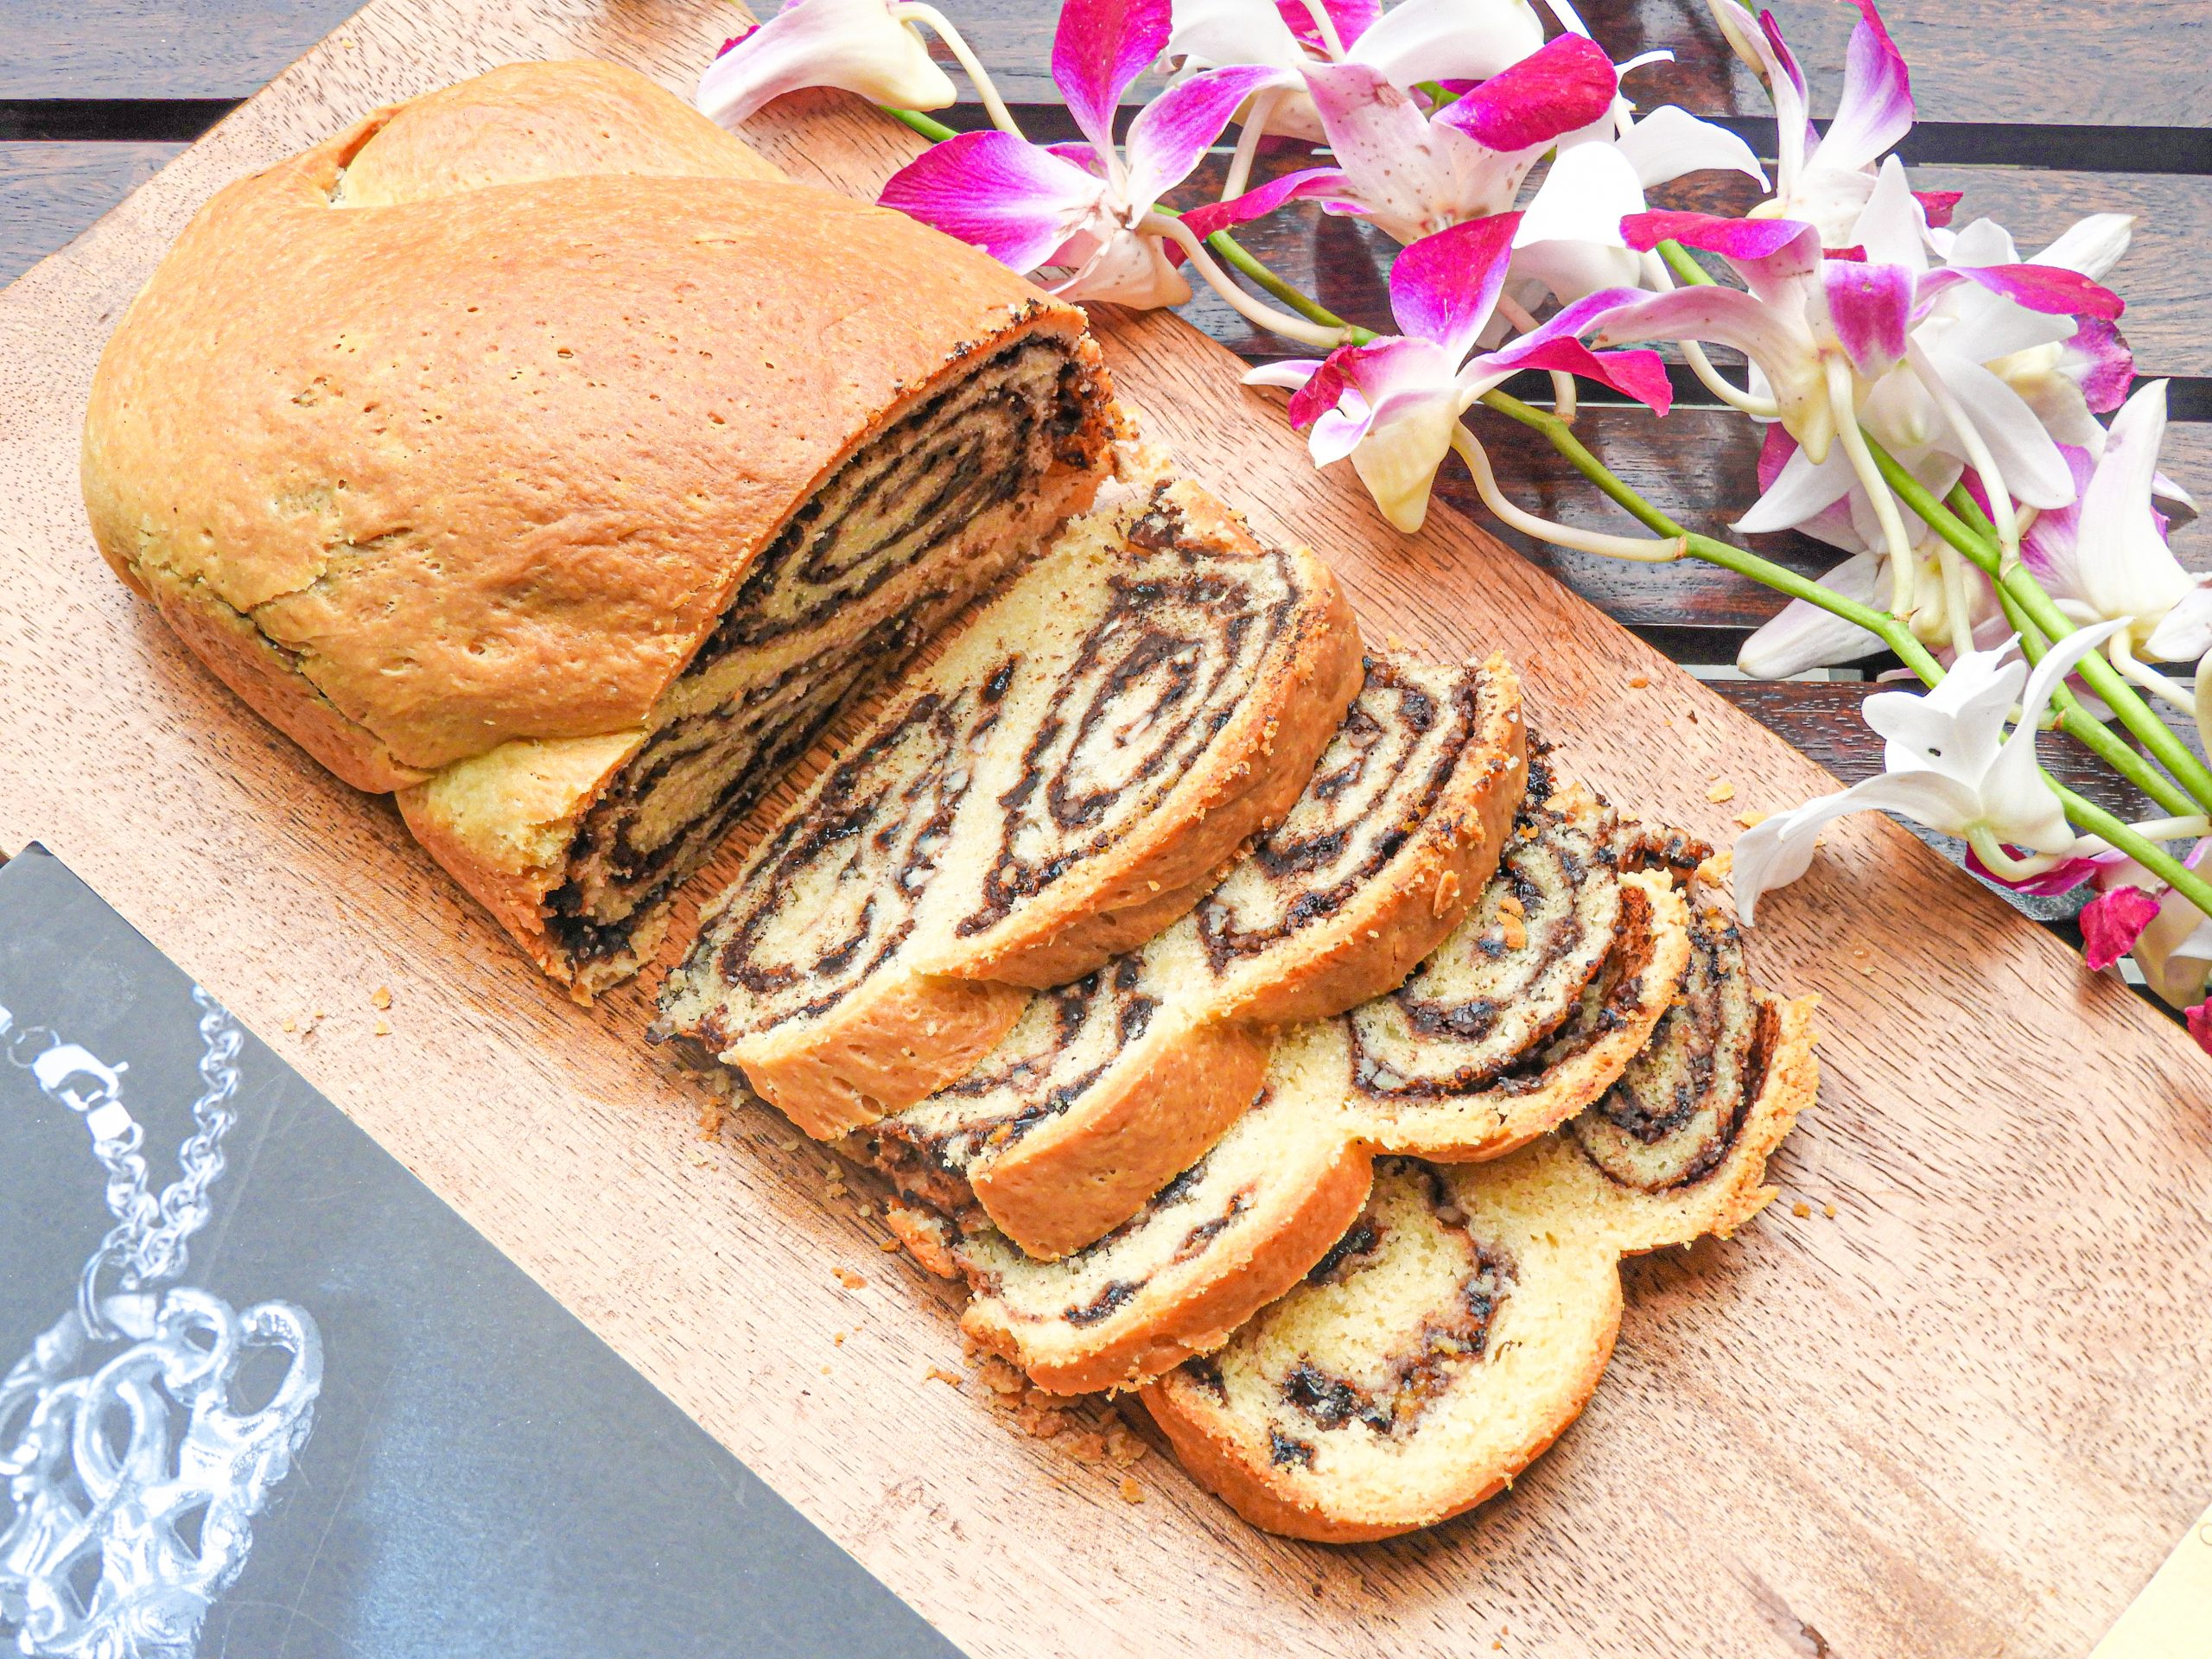 Chocolate Walnut Babka Bread - Middle East Cuisine at Kitchen by Nidhi